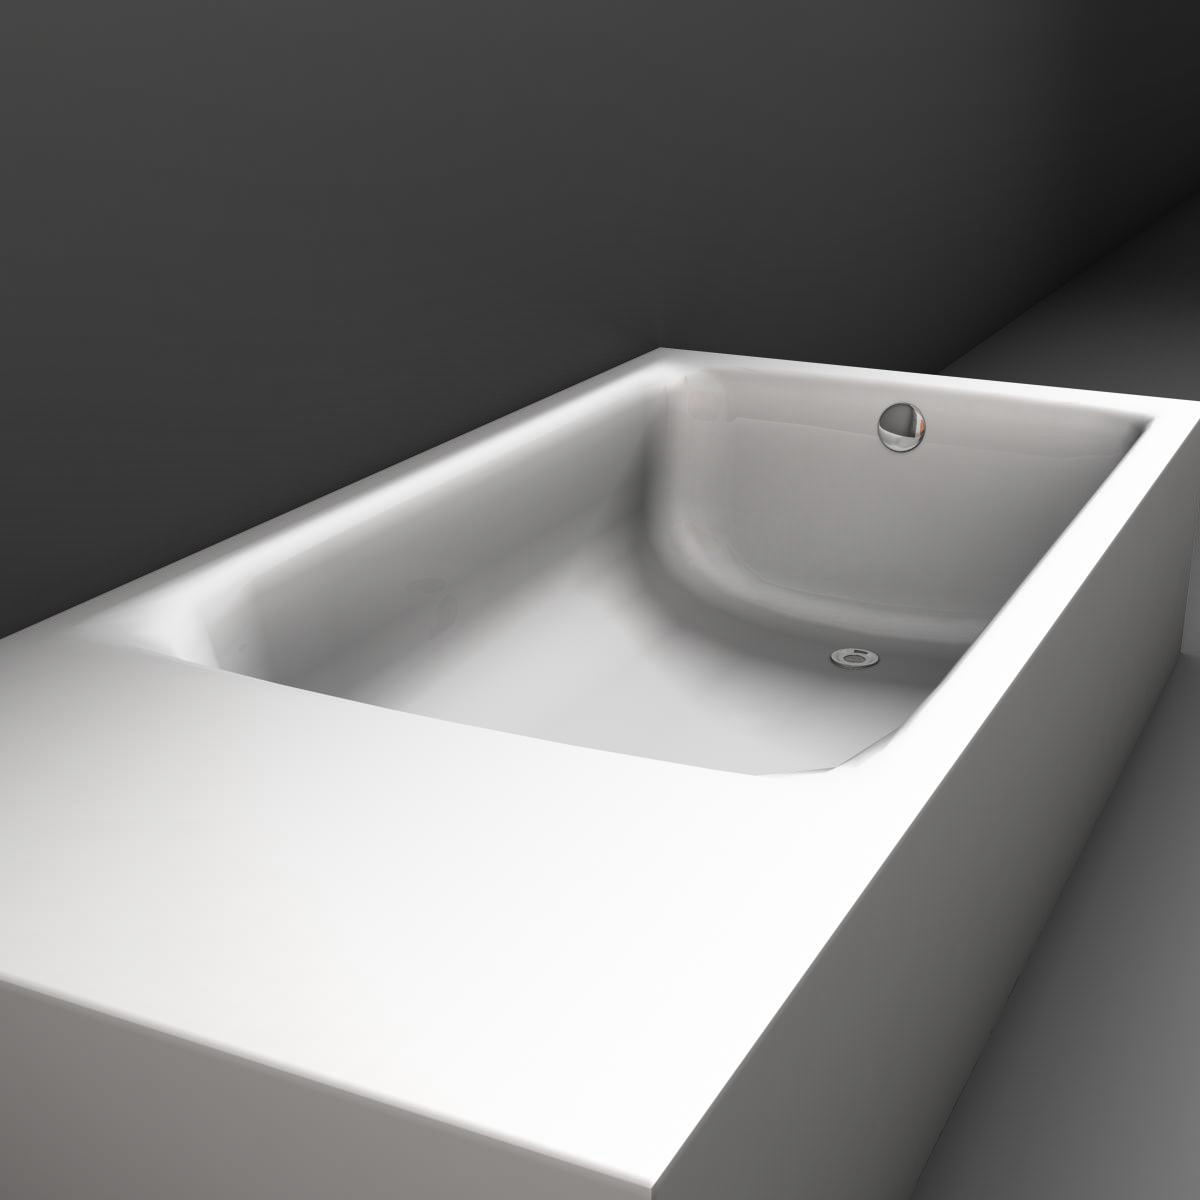 tub 3d model 3ds max fbx ma mb obj 158319